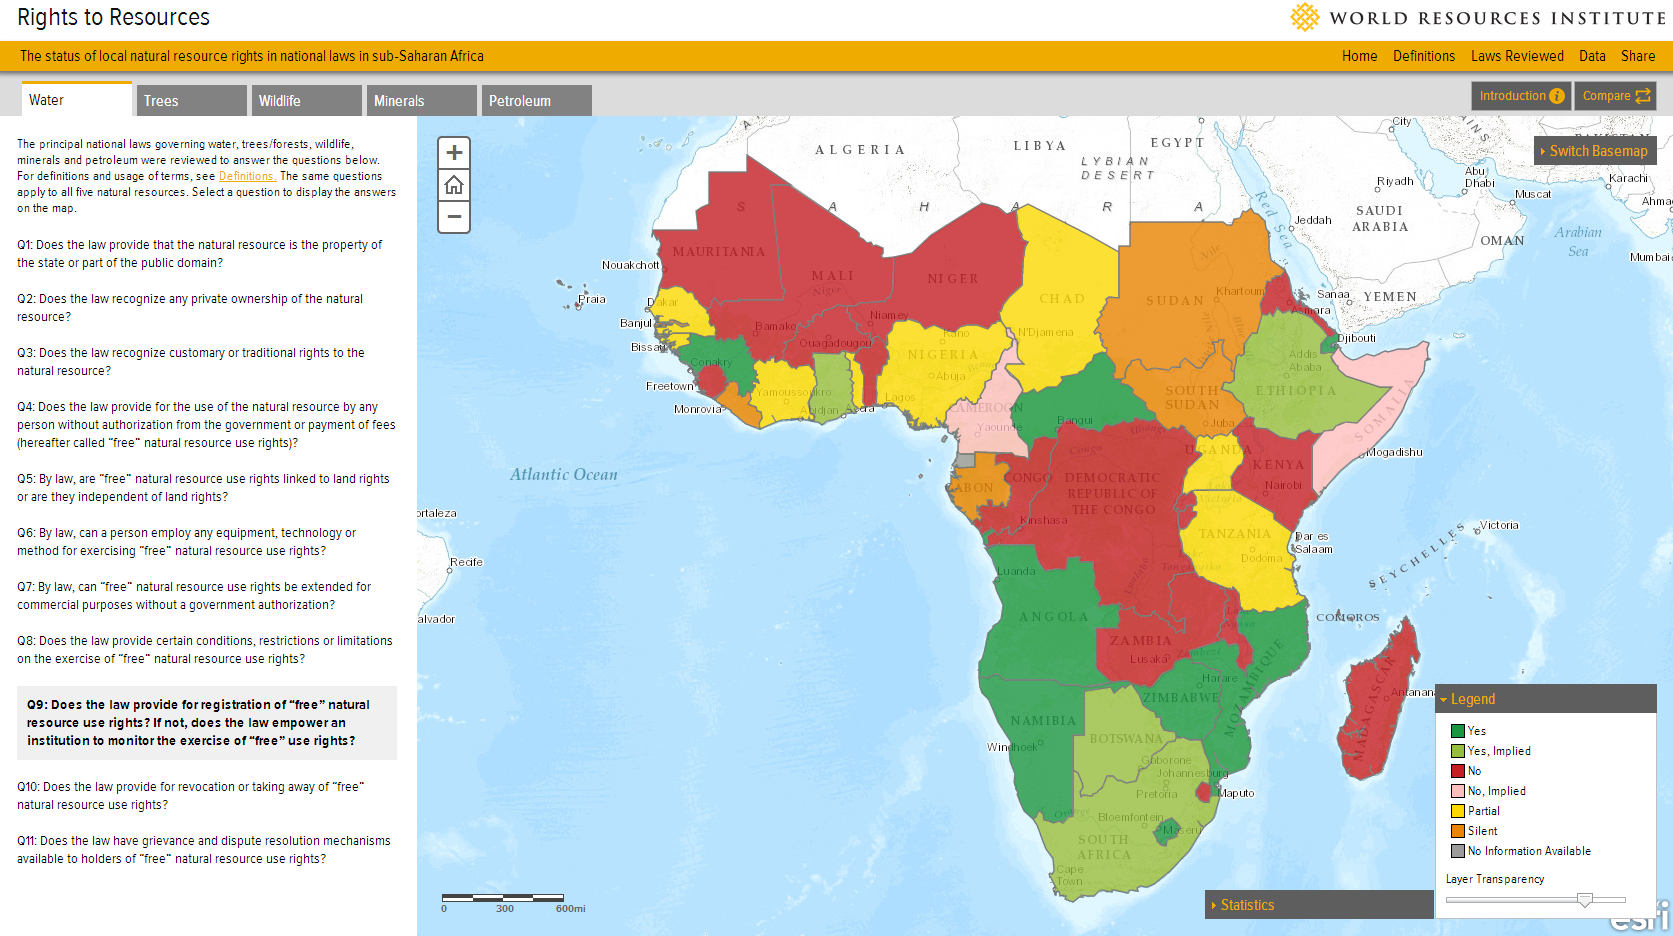 right to resources map world resources institute